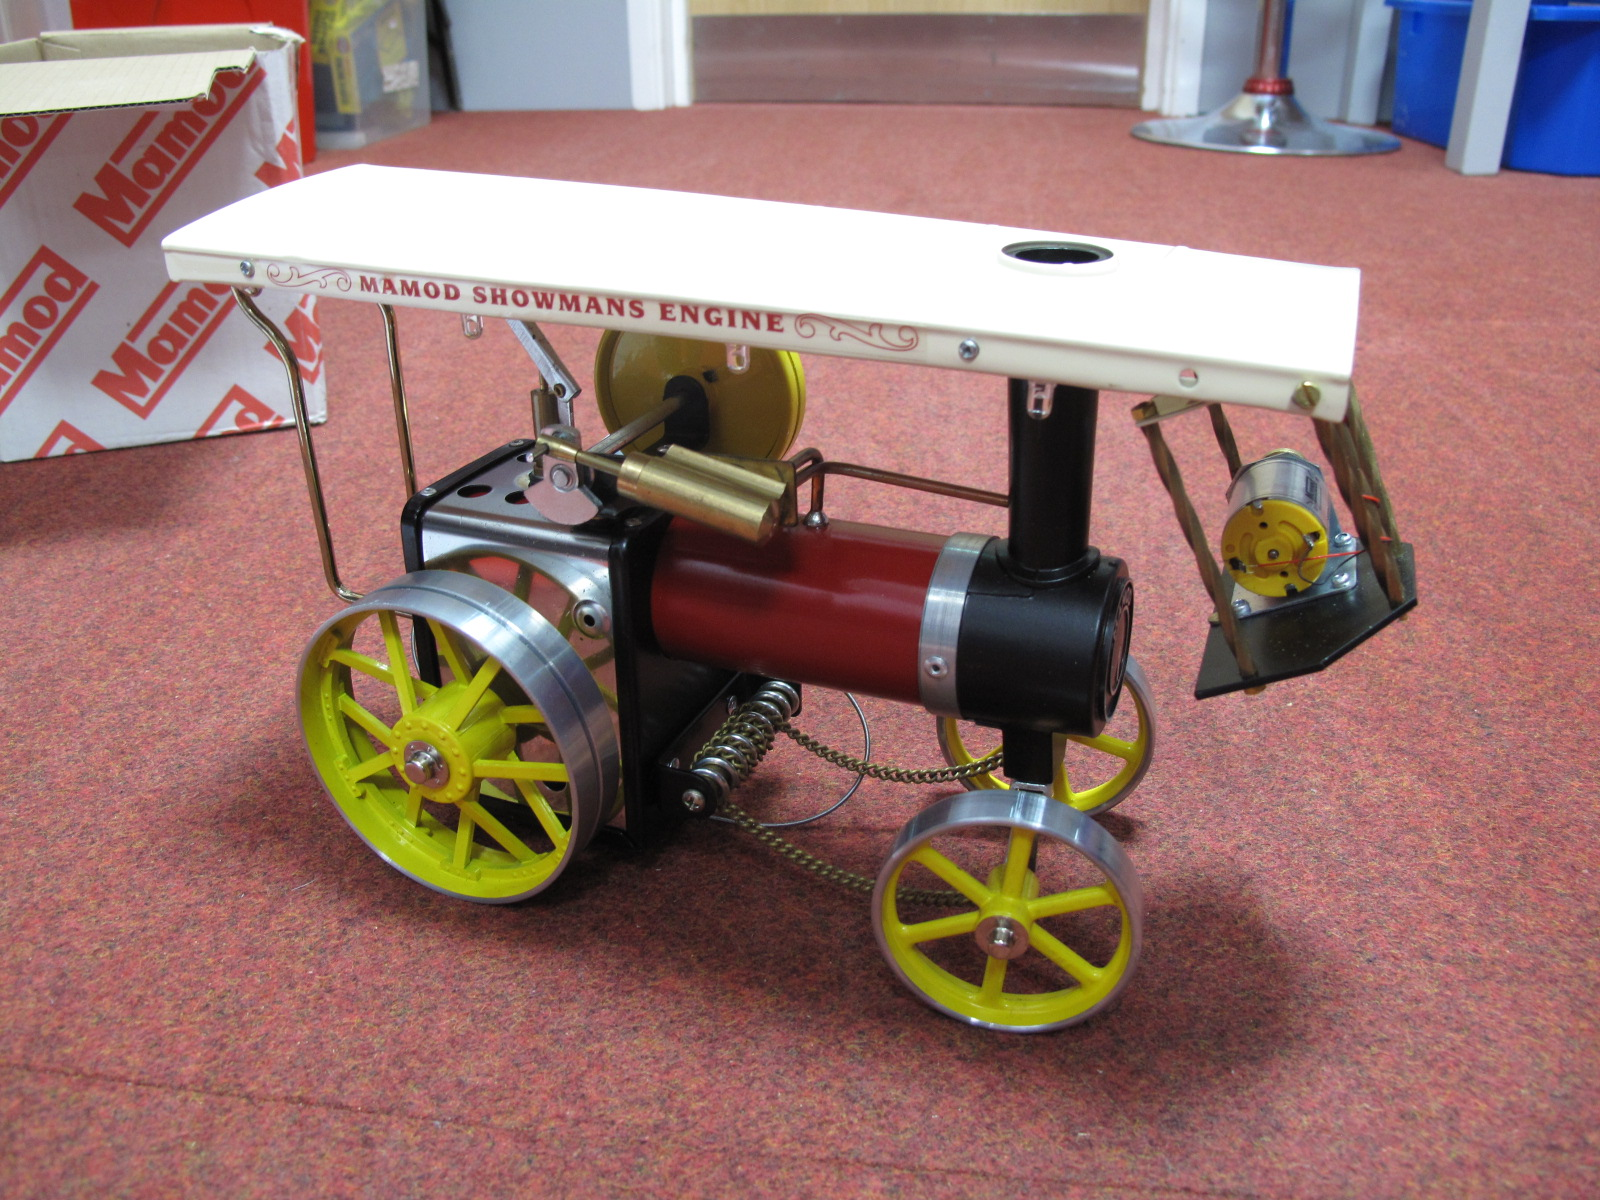 Lot 25 - A Boxed Mamod #1380 Live Steam Showman's Engine, red/black body work, burner, scuttle steering rod